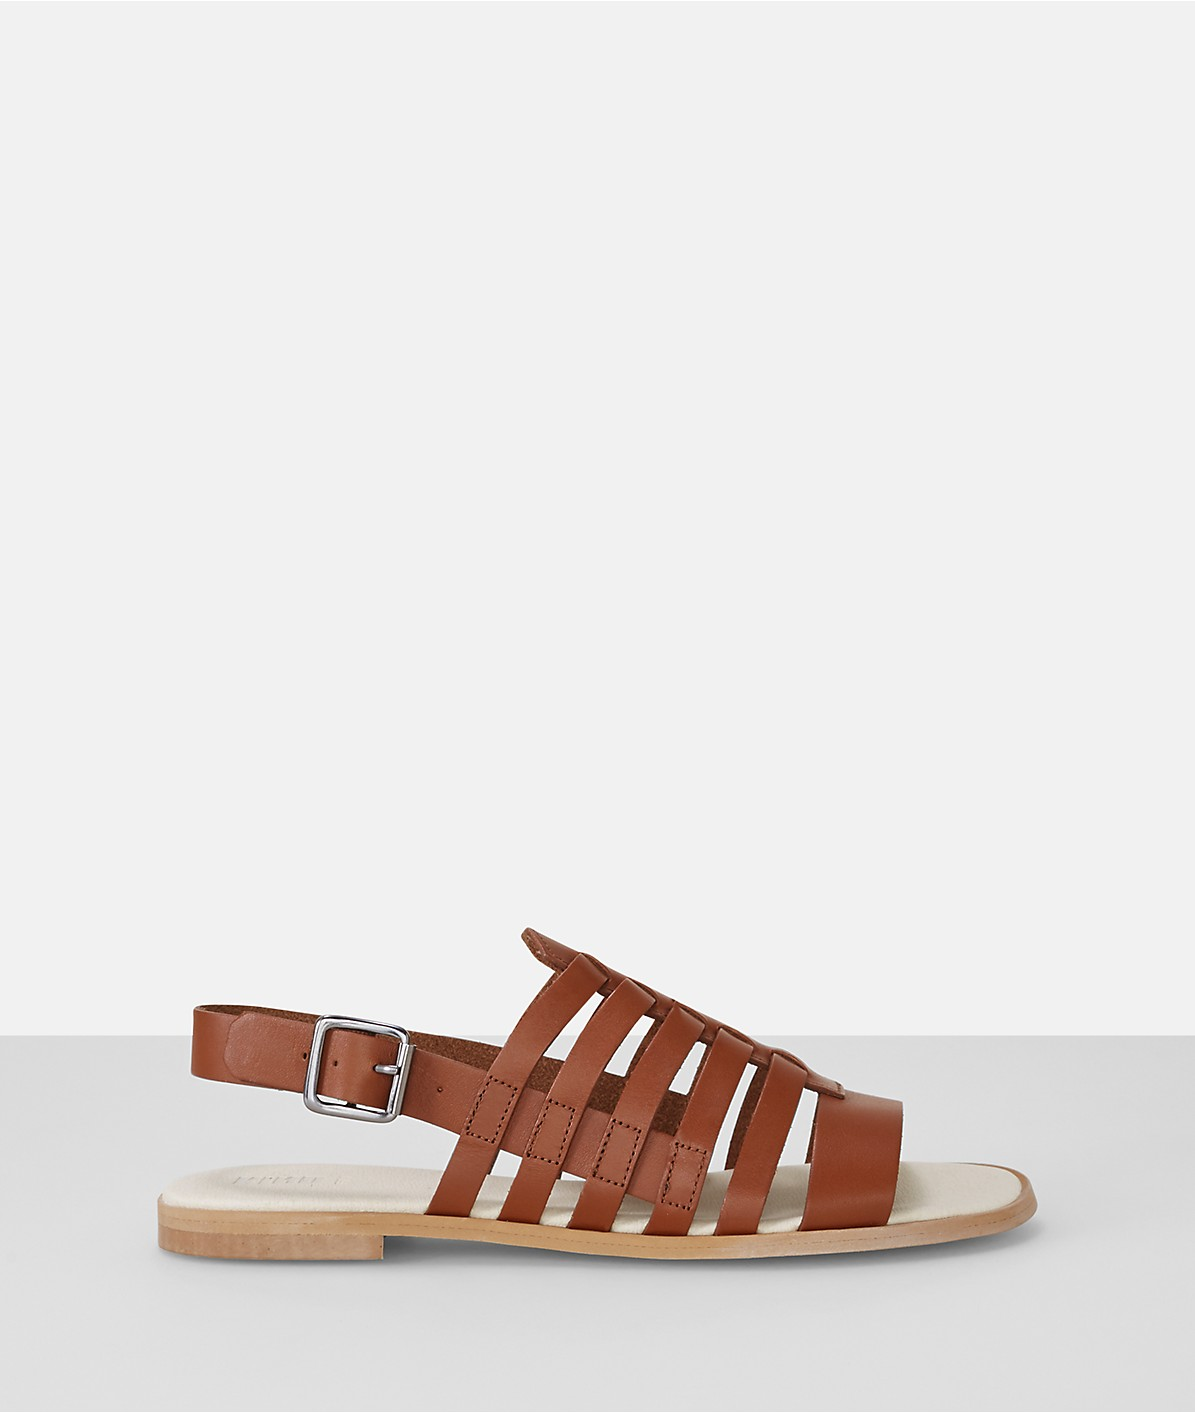 Seal sandals from liebeskind